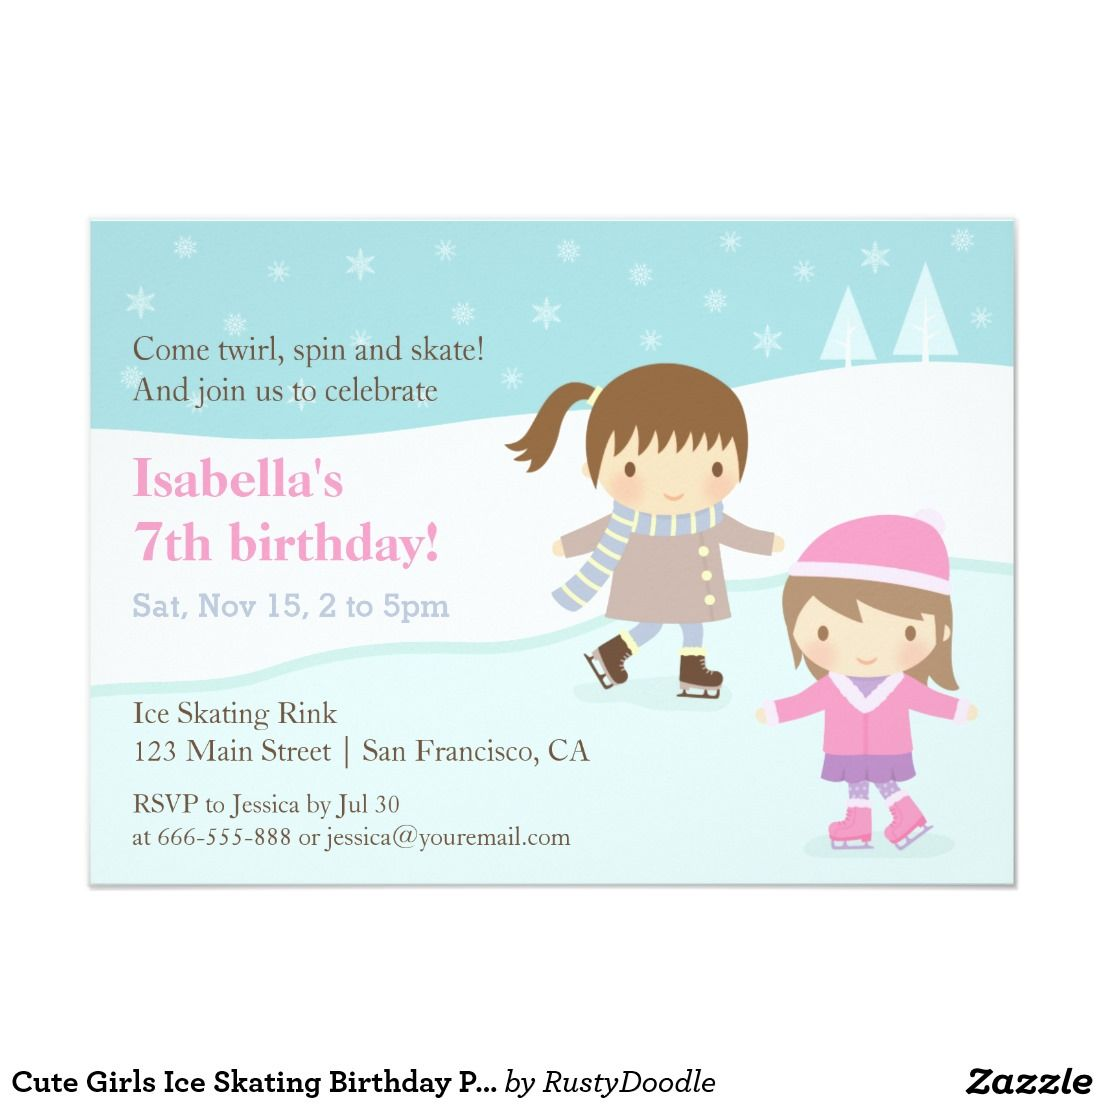 Cute girls ice skating birthday party invitations kids 2 12 cute girls ice skating birthday party invitations filmwisefo Gallery